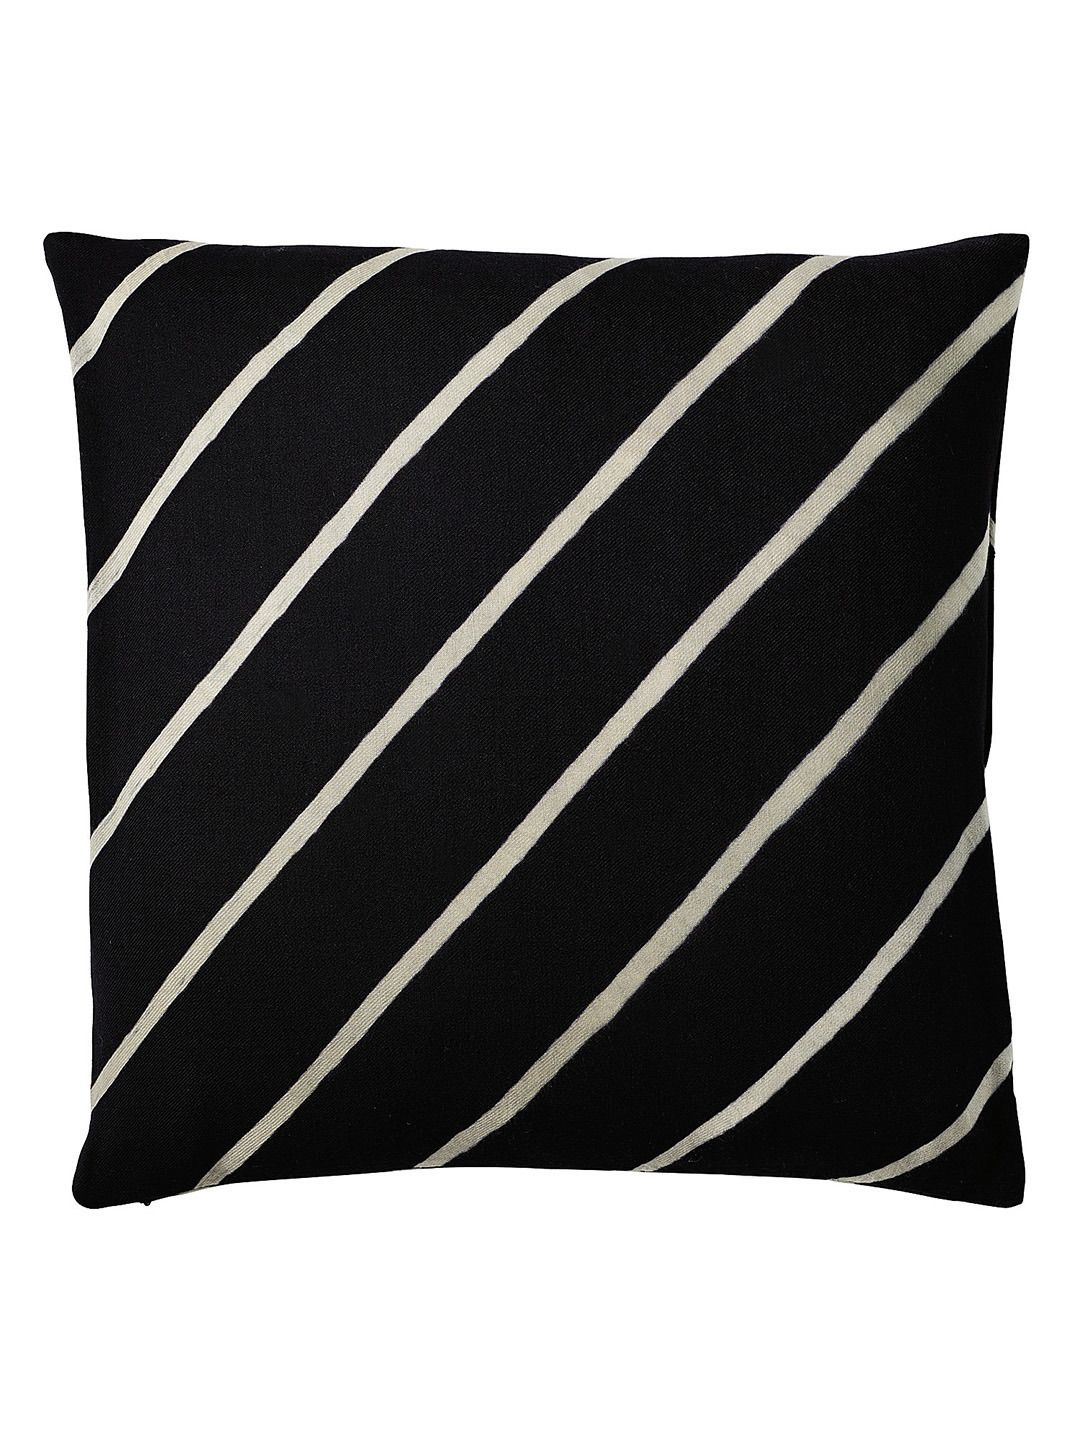 Zebra stripe pillow cover by serena u lily at gilt home wants